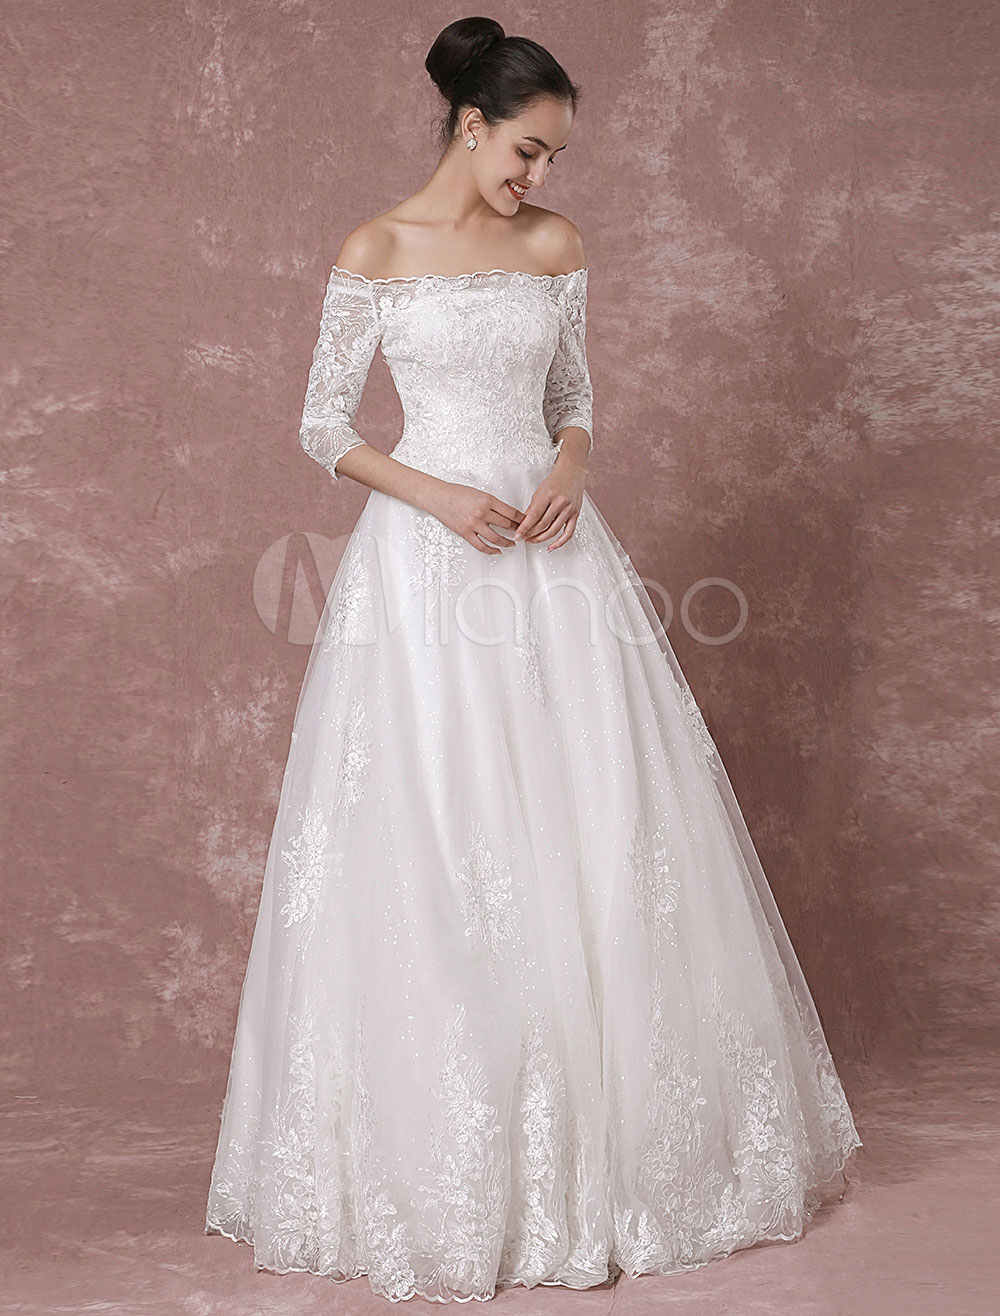 mariage robe sequin off the shoulder tulle demi manches